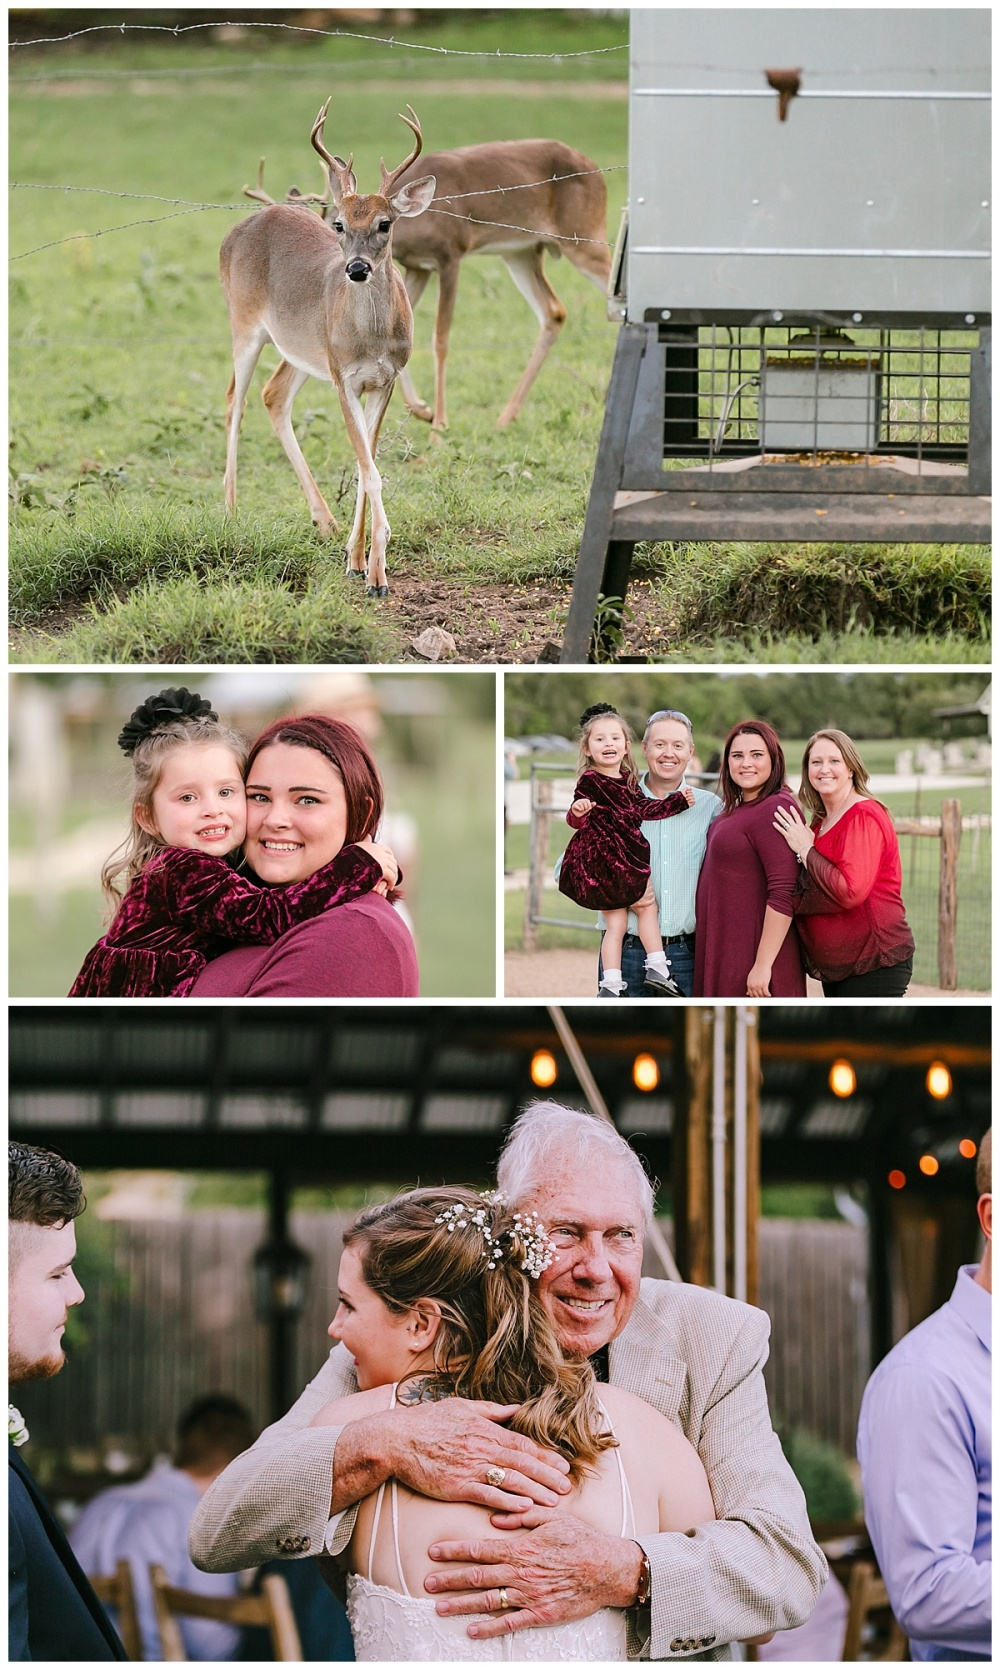 Texas-Wedding-Photographer-Gruene-Estate-Open-Air-Chapel-Carly-Barton-Photography-Katie-Nic_0077.jpg